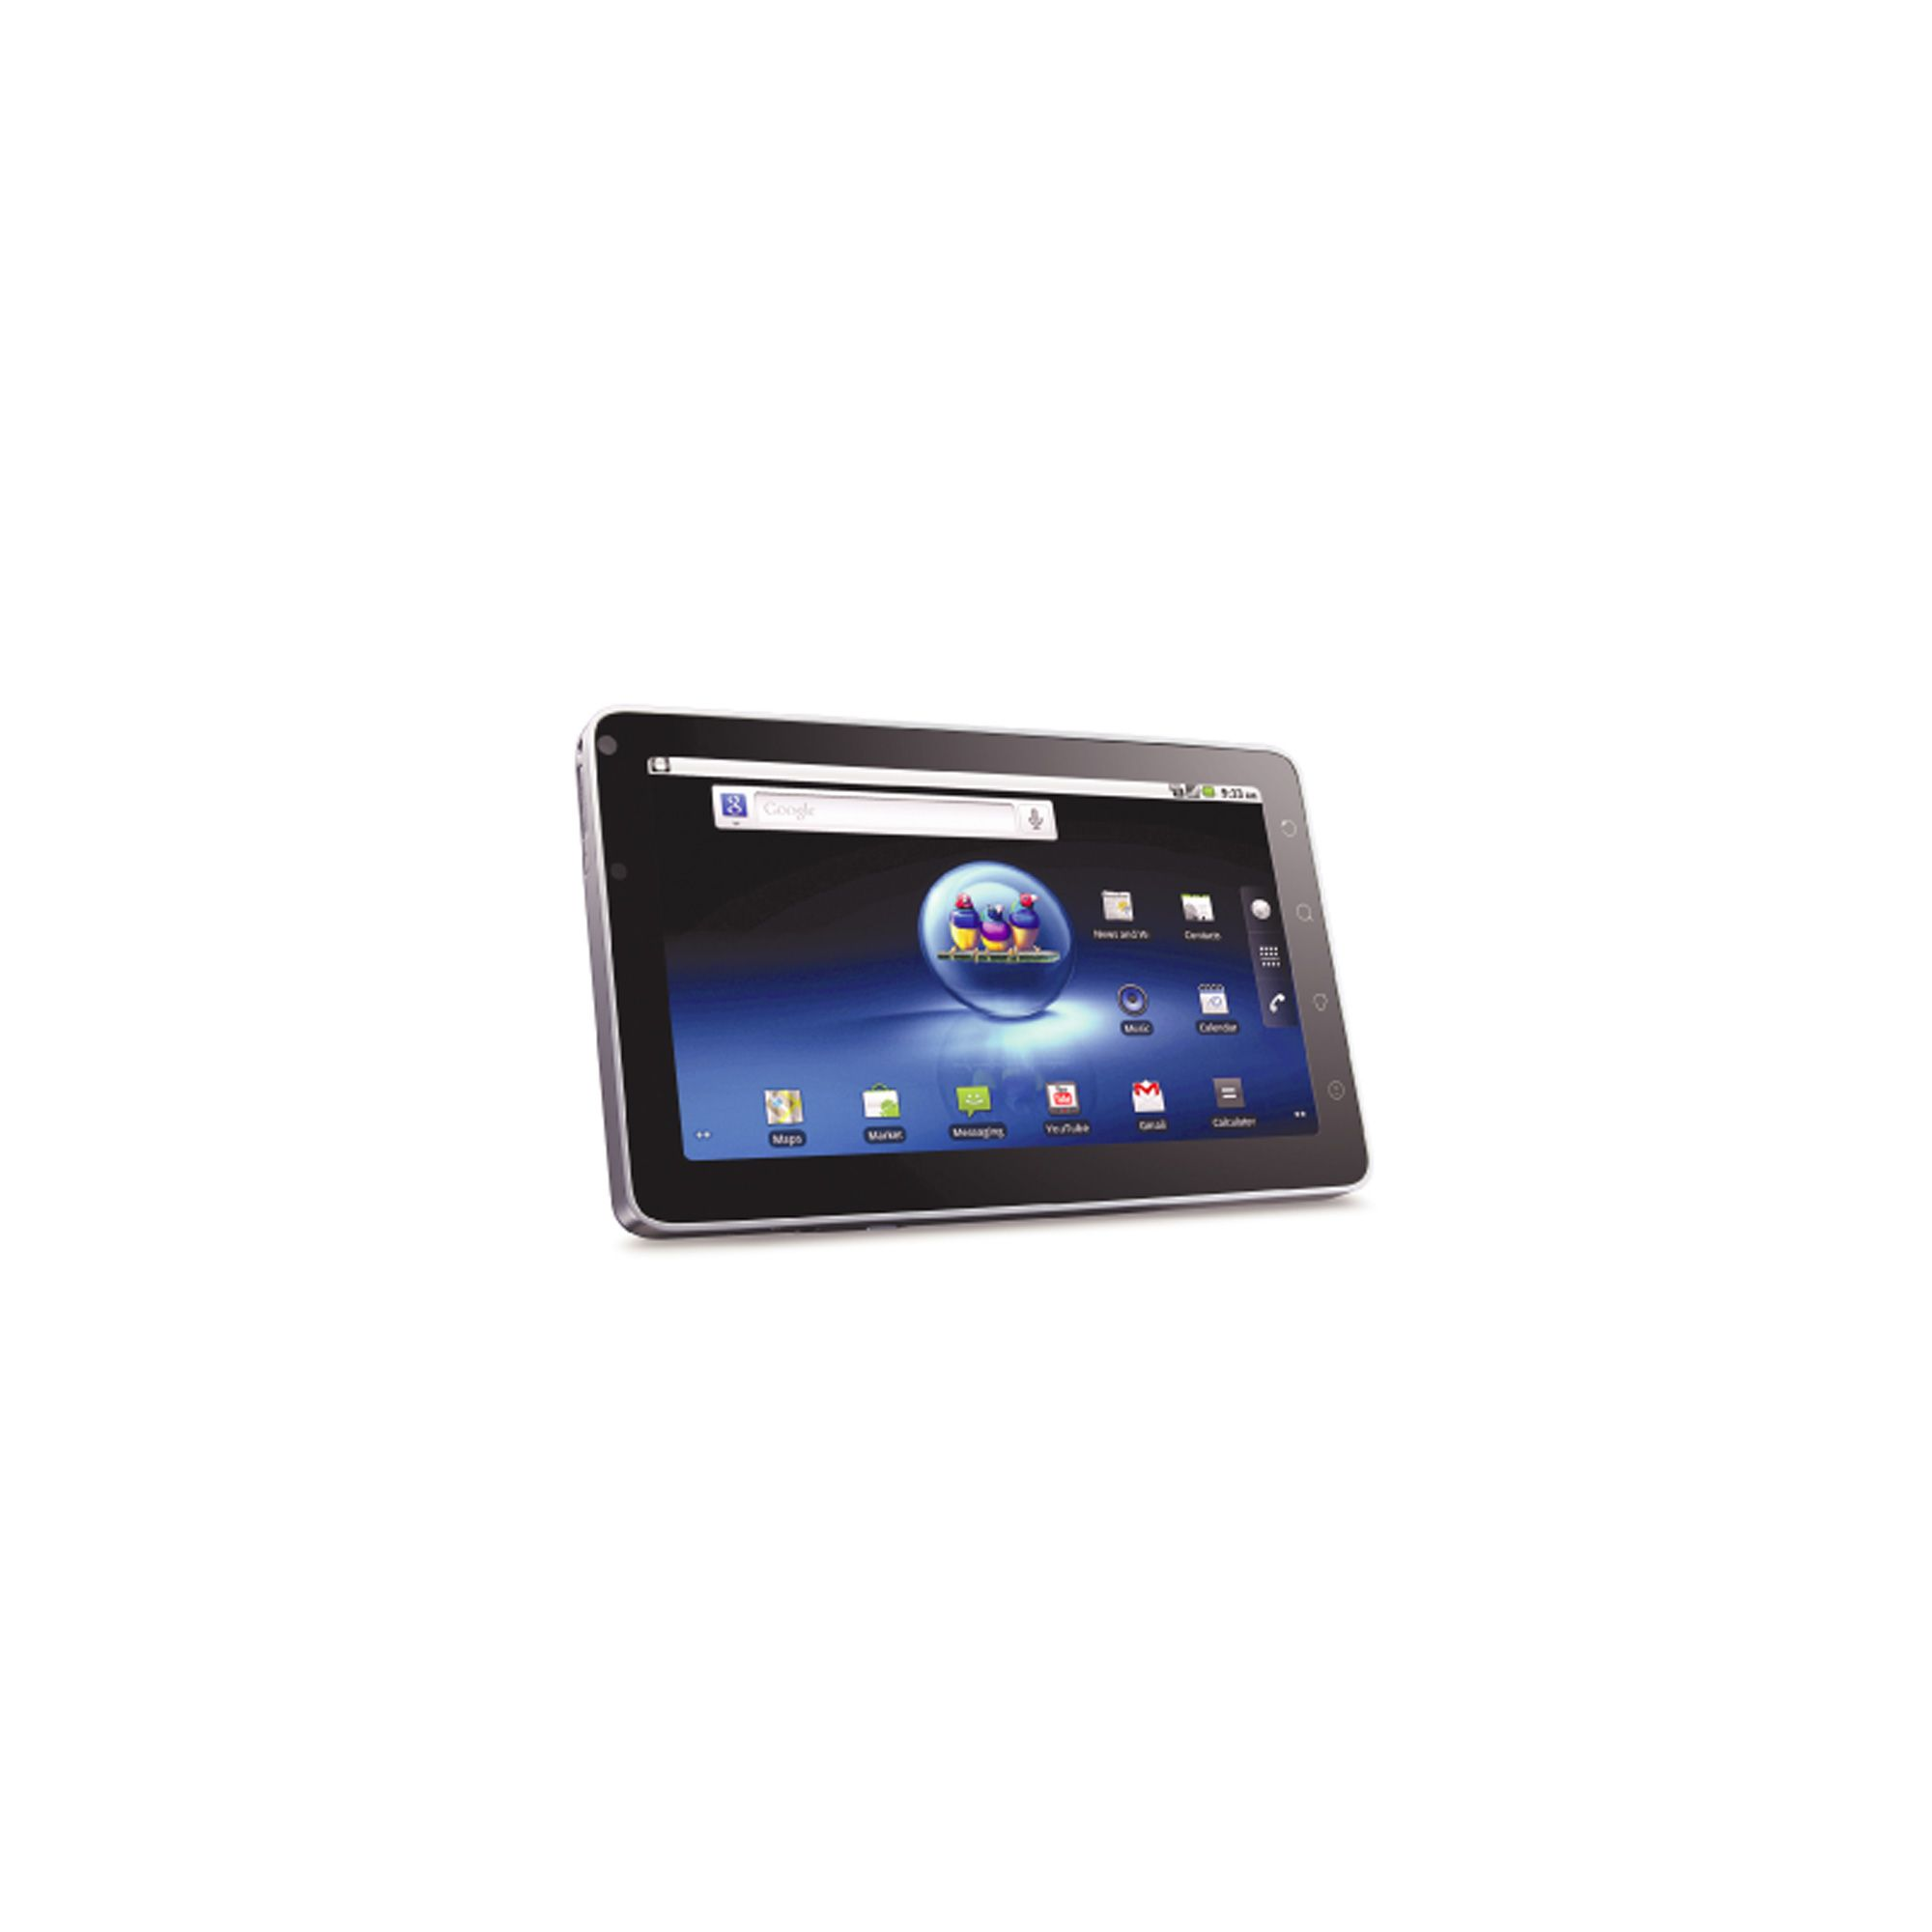 Viewpad 7 Inch Google Android Touch Tablet Wifi Camera GPS at Tesco Direct